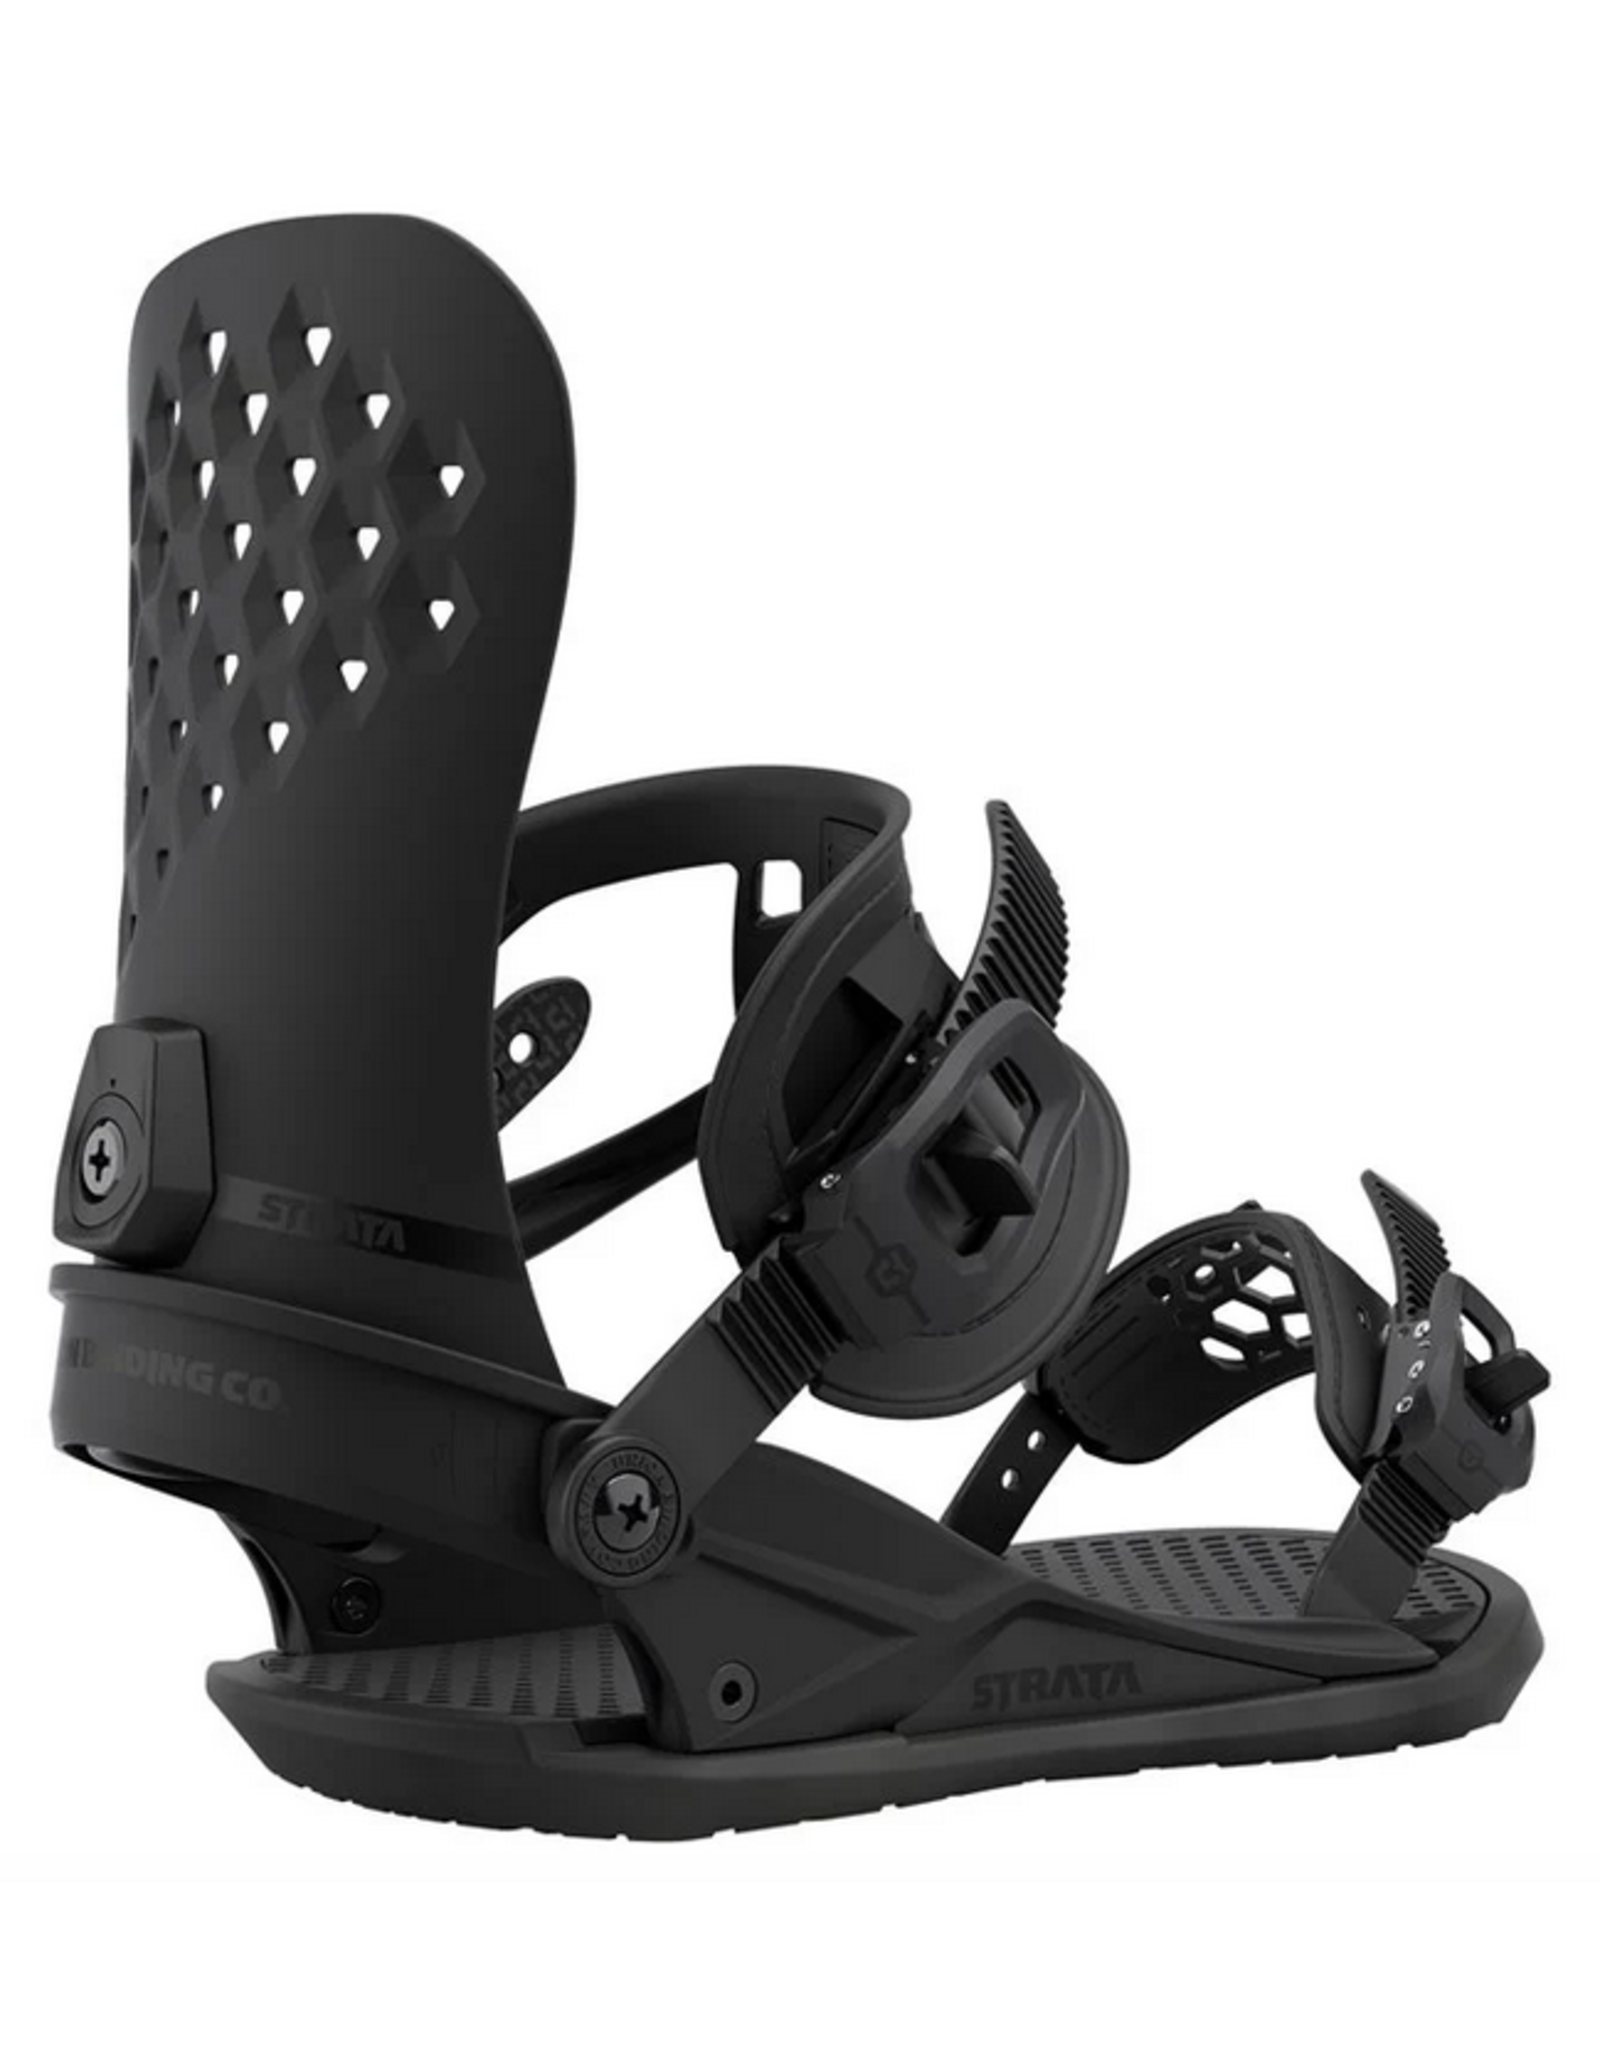 UNION UNION 2021 STRATA BINDINGS BLACK